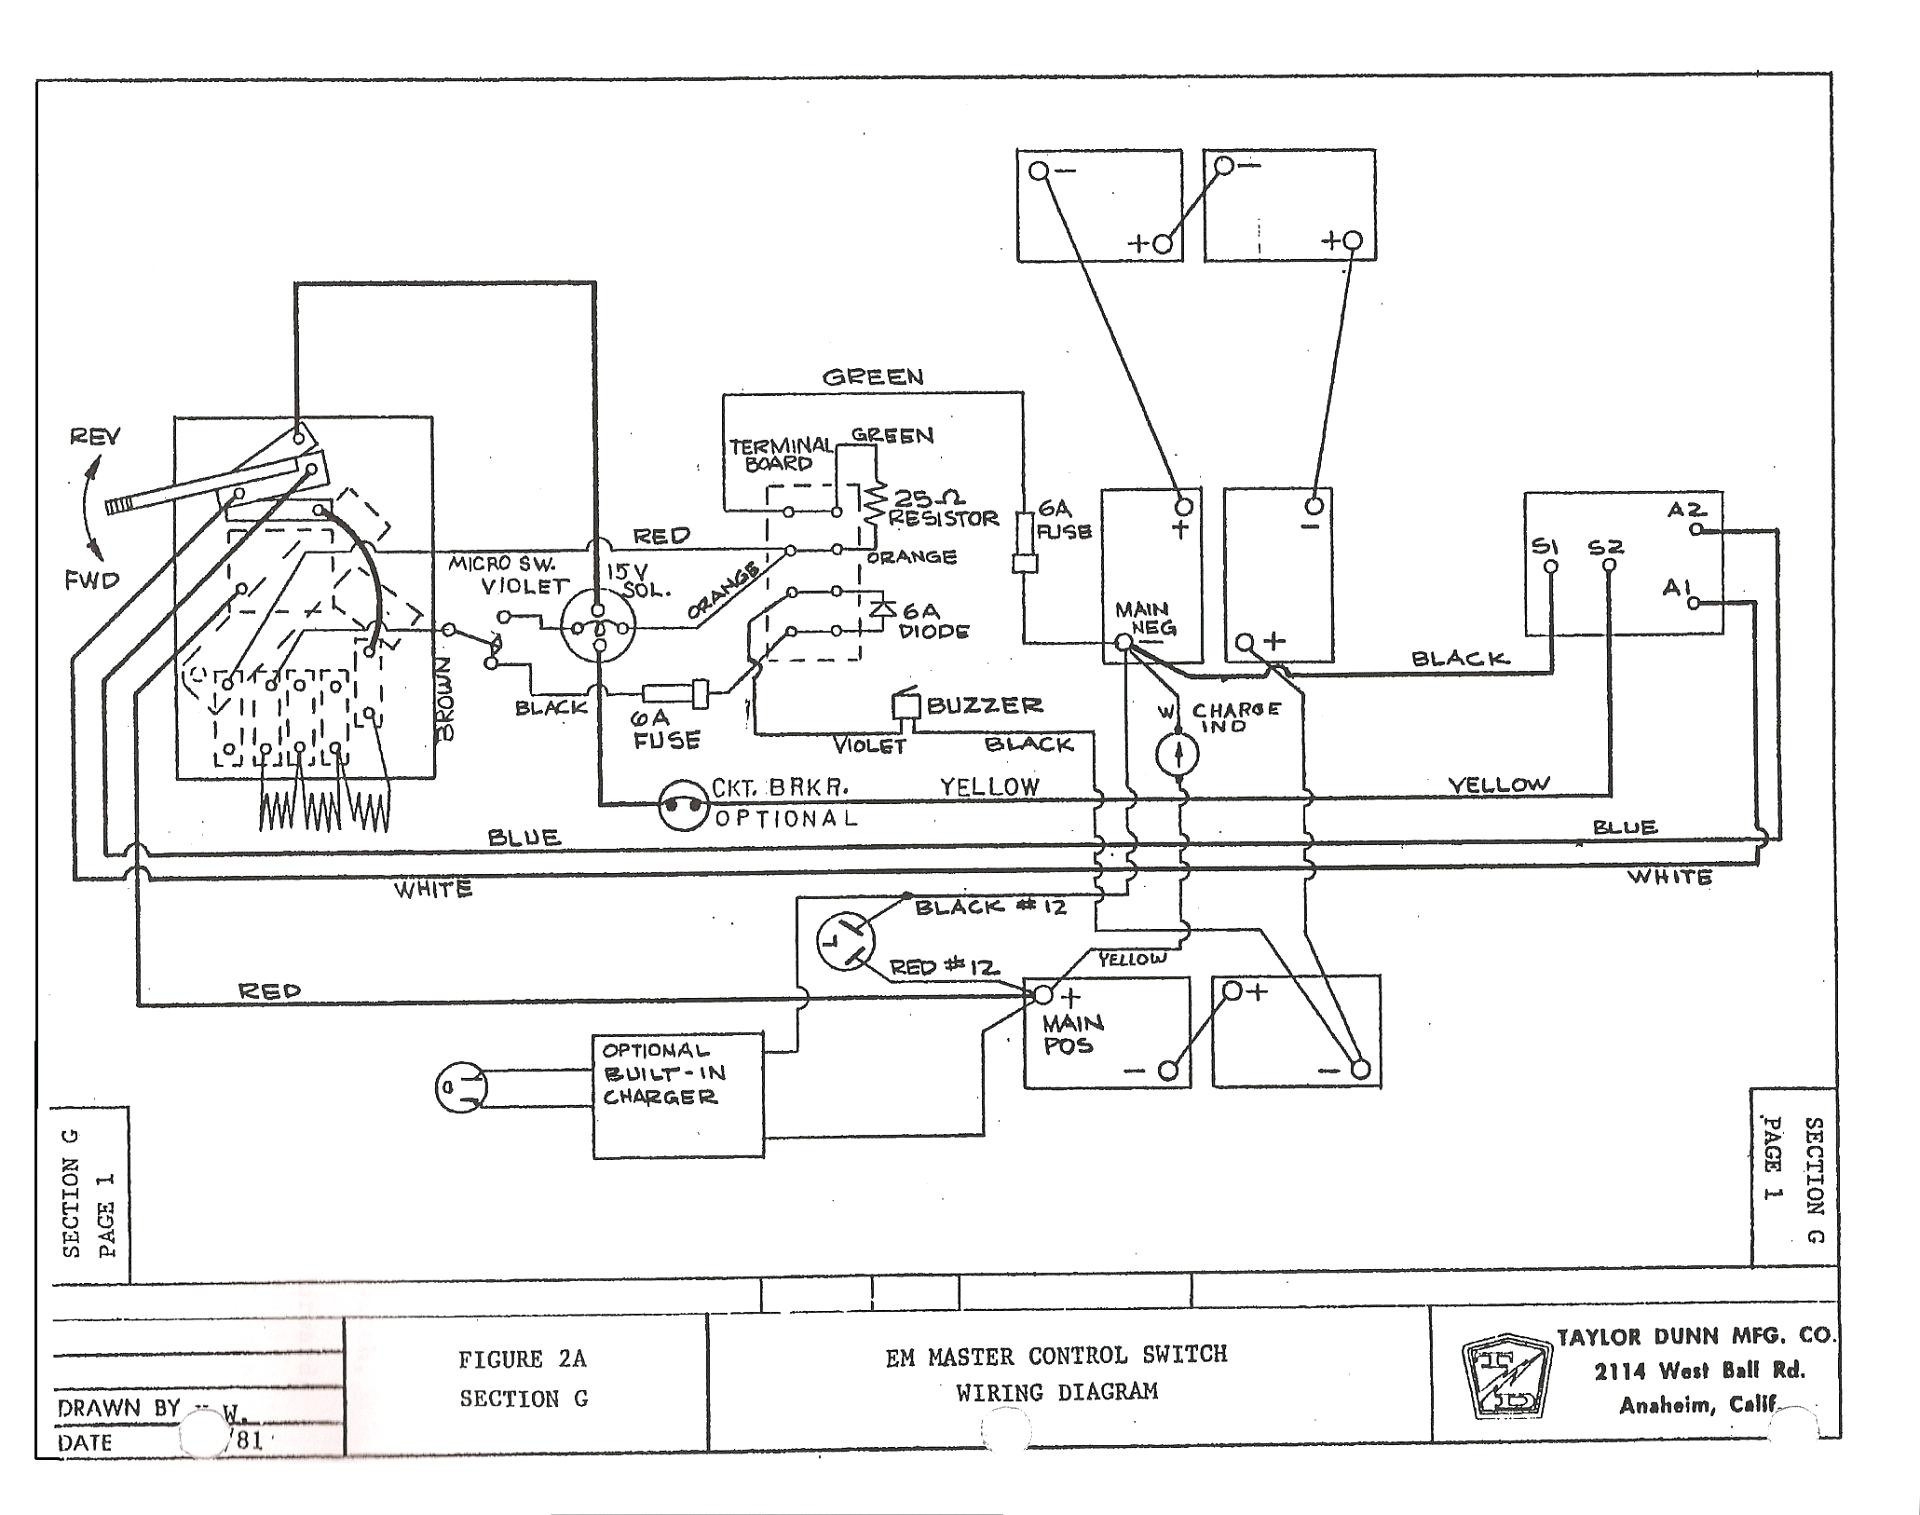 wiring schematic for ez go golf cart